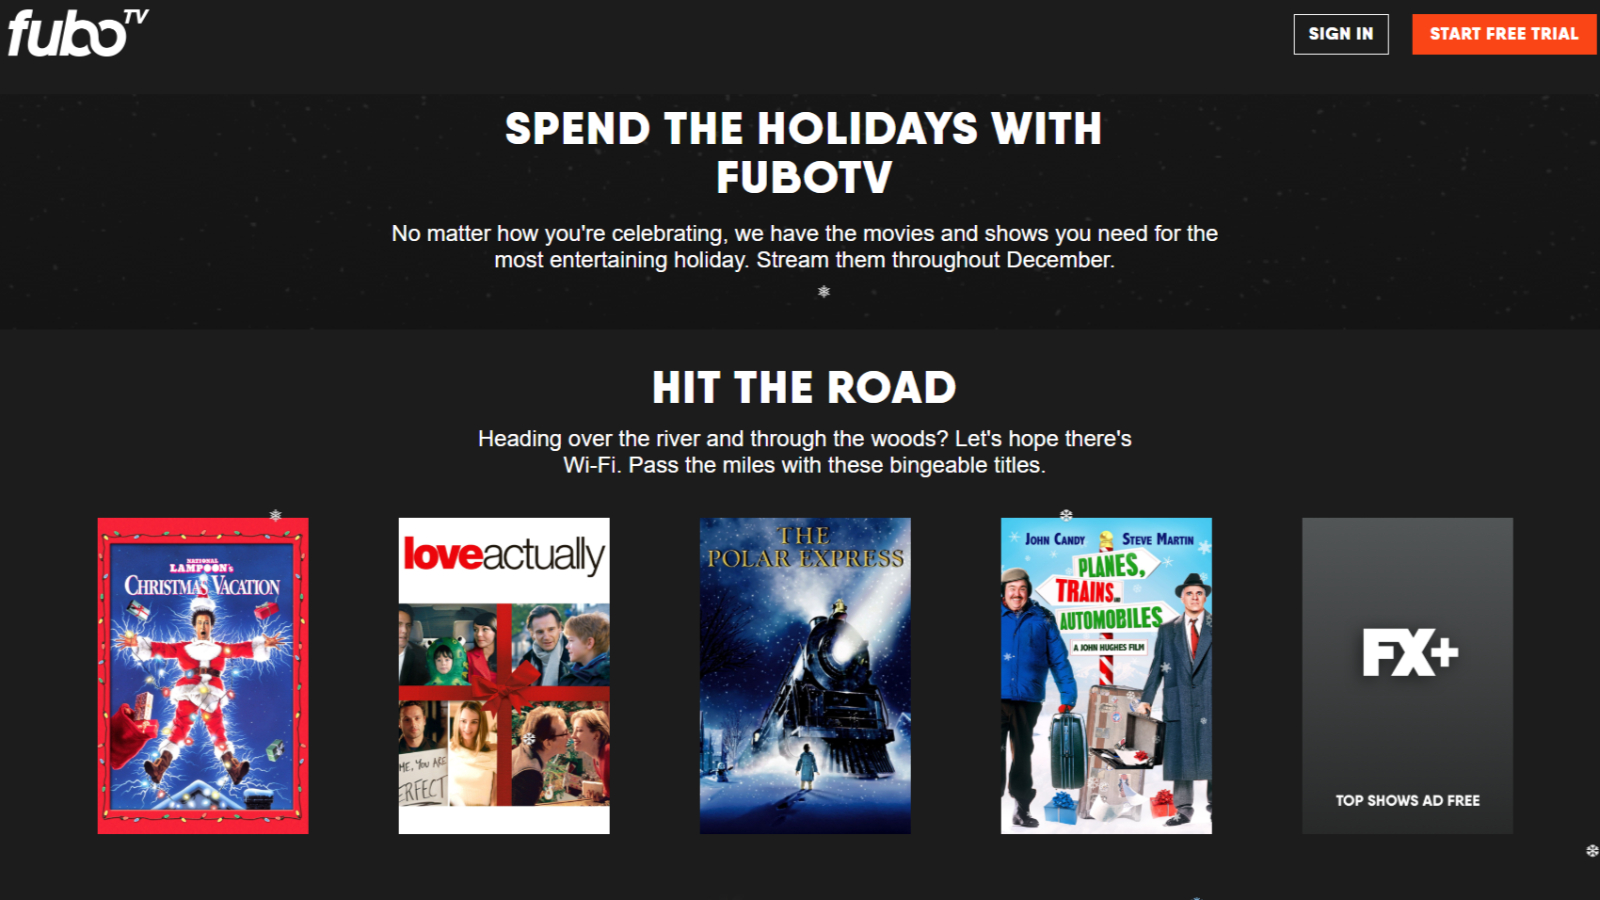 Christmas Vacation Streaming.Fubotv Sets Up Holiday Streaming Guide To Help You Find Your